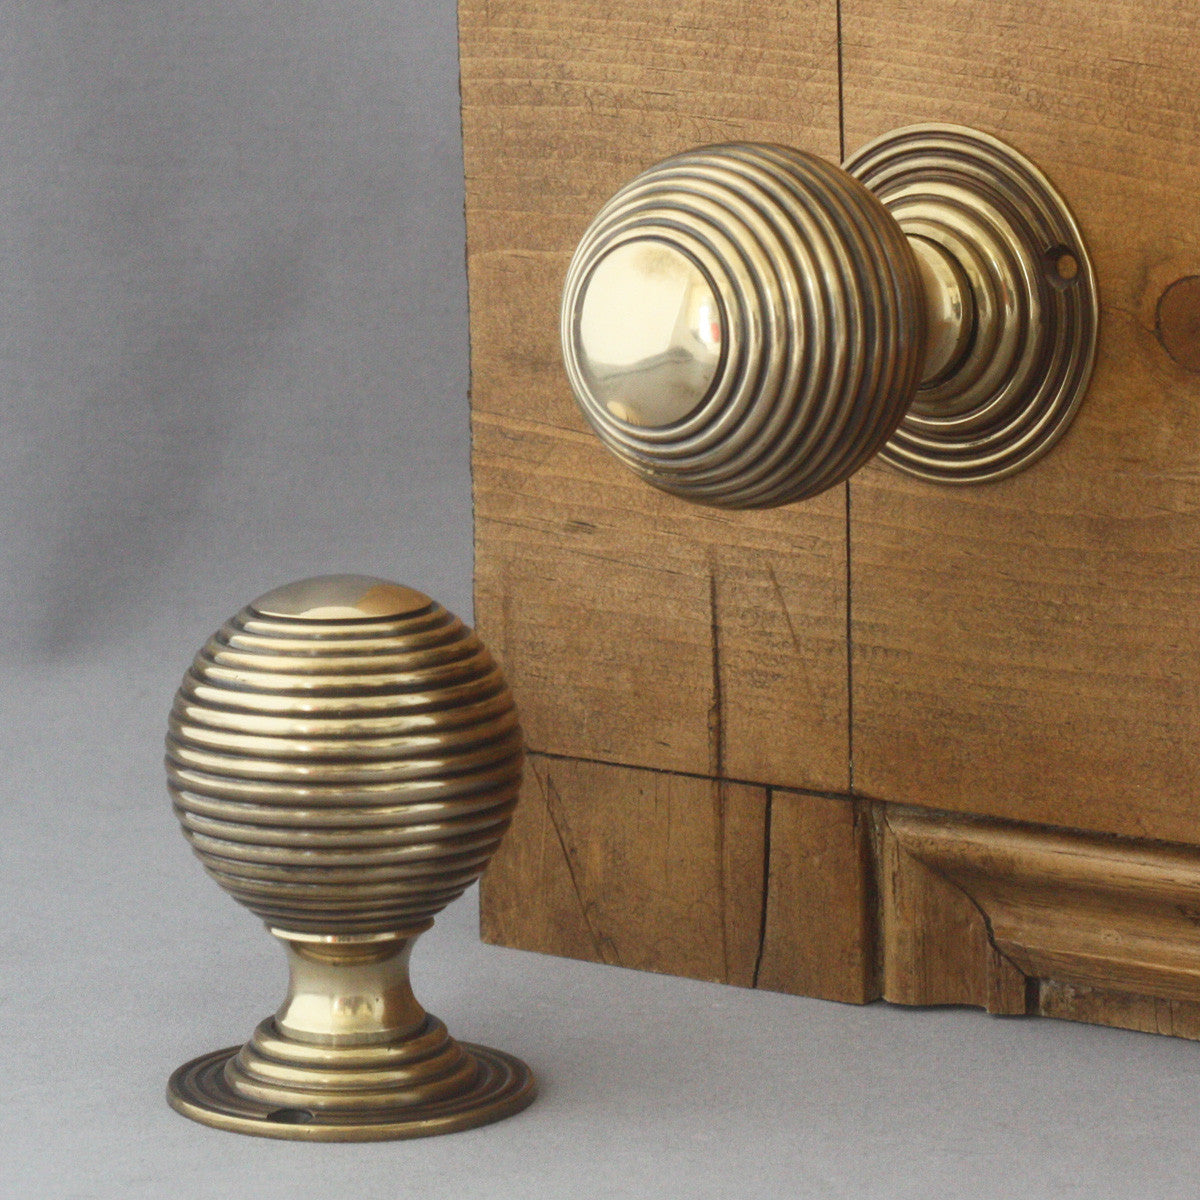 Large Brass Beehive Door Knobs | Architectural Decor